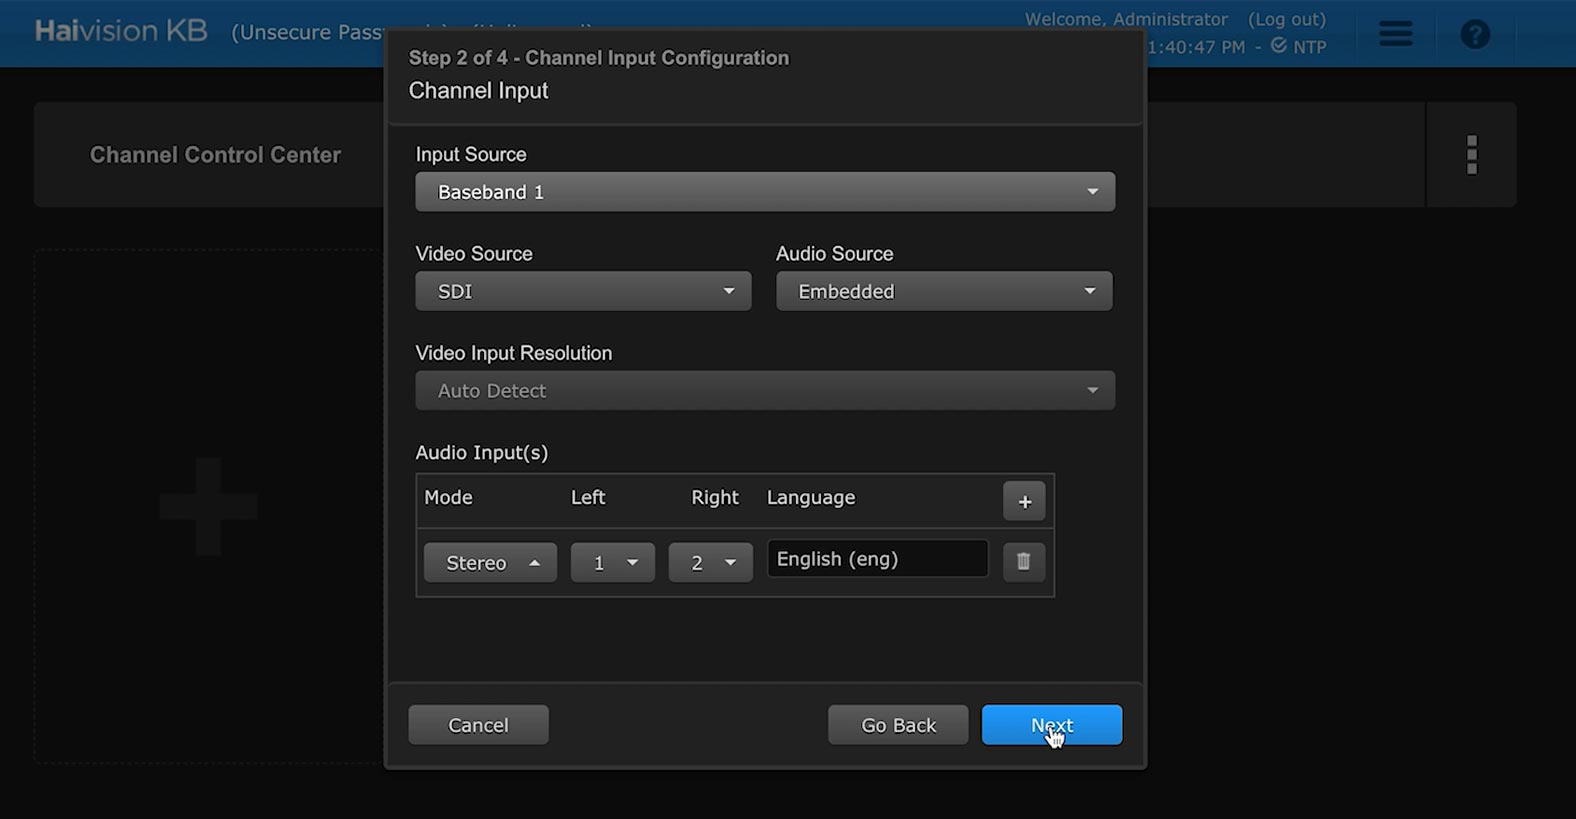 Selecting channel input for your new channel in the Haivision KB video encoder